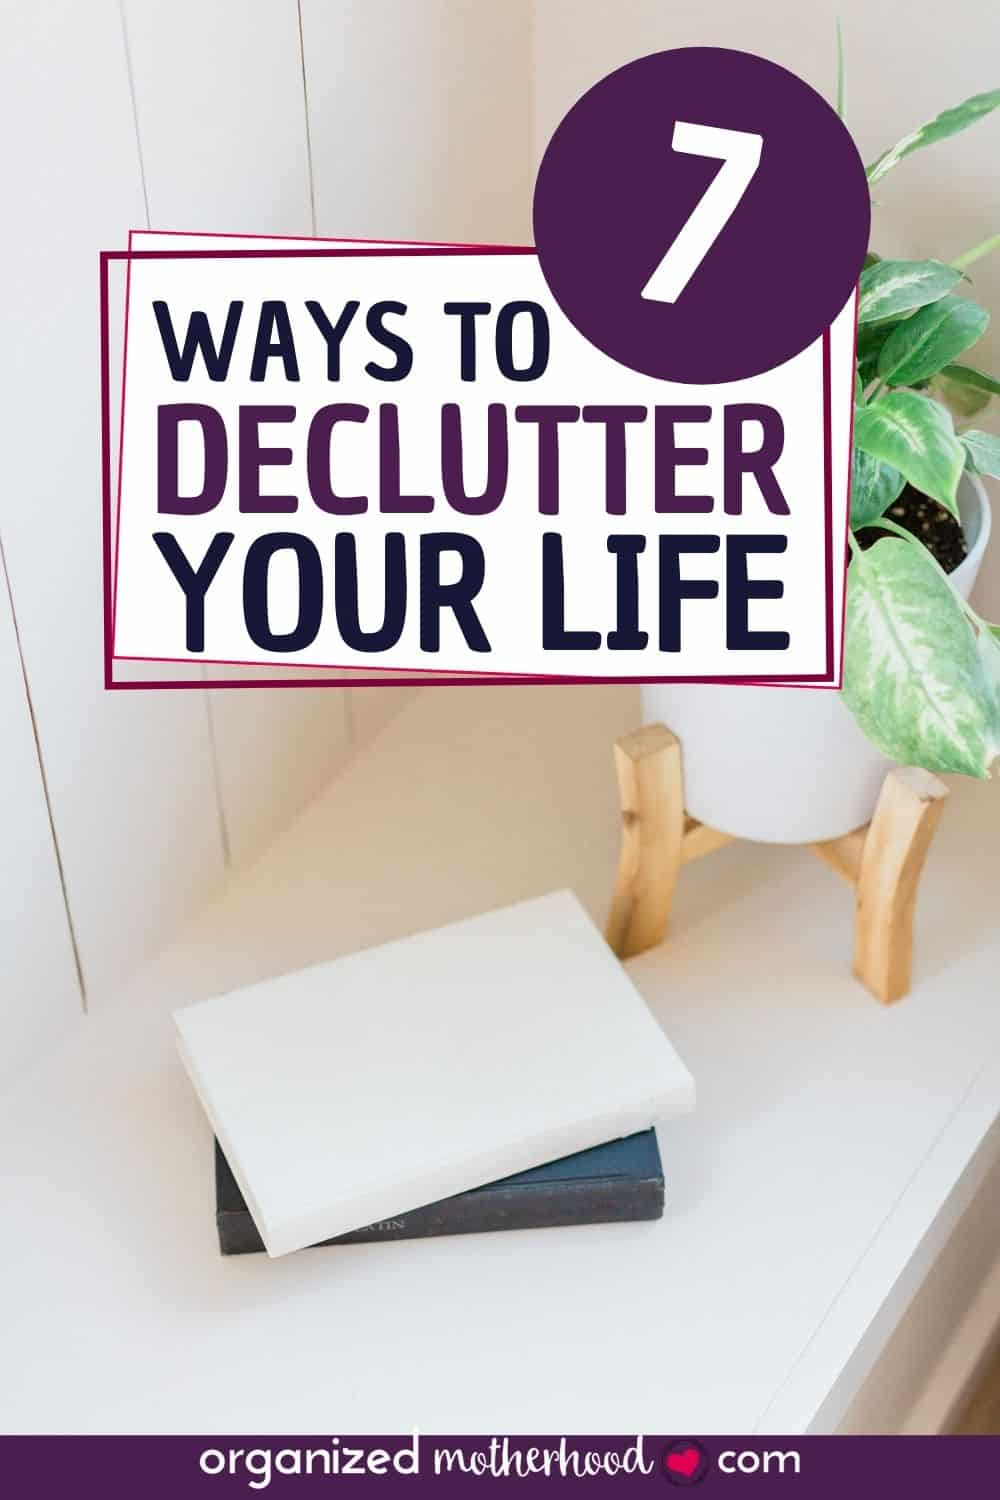 7 ways to declutter your life